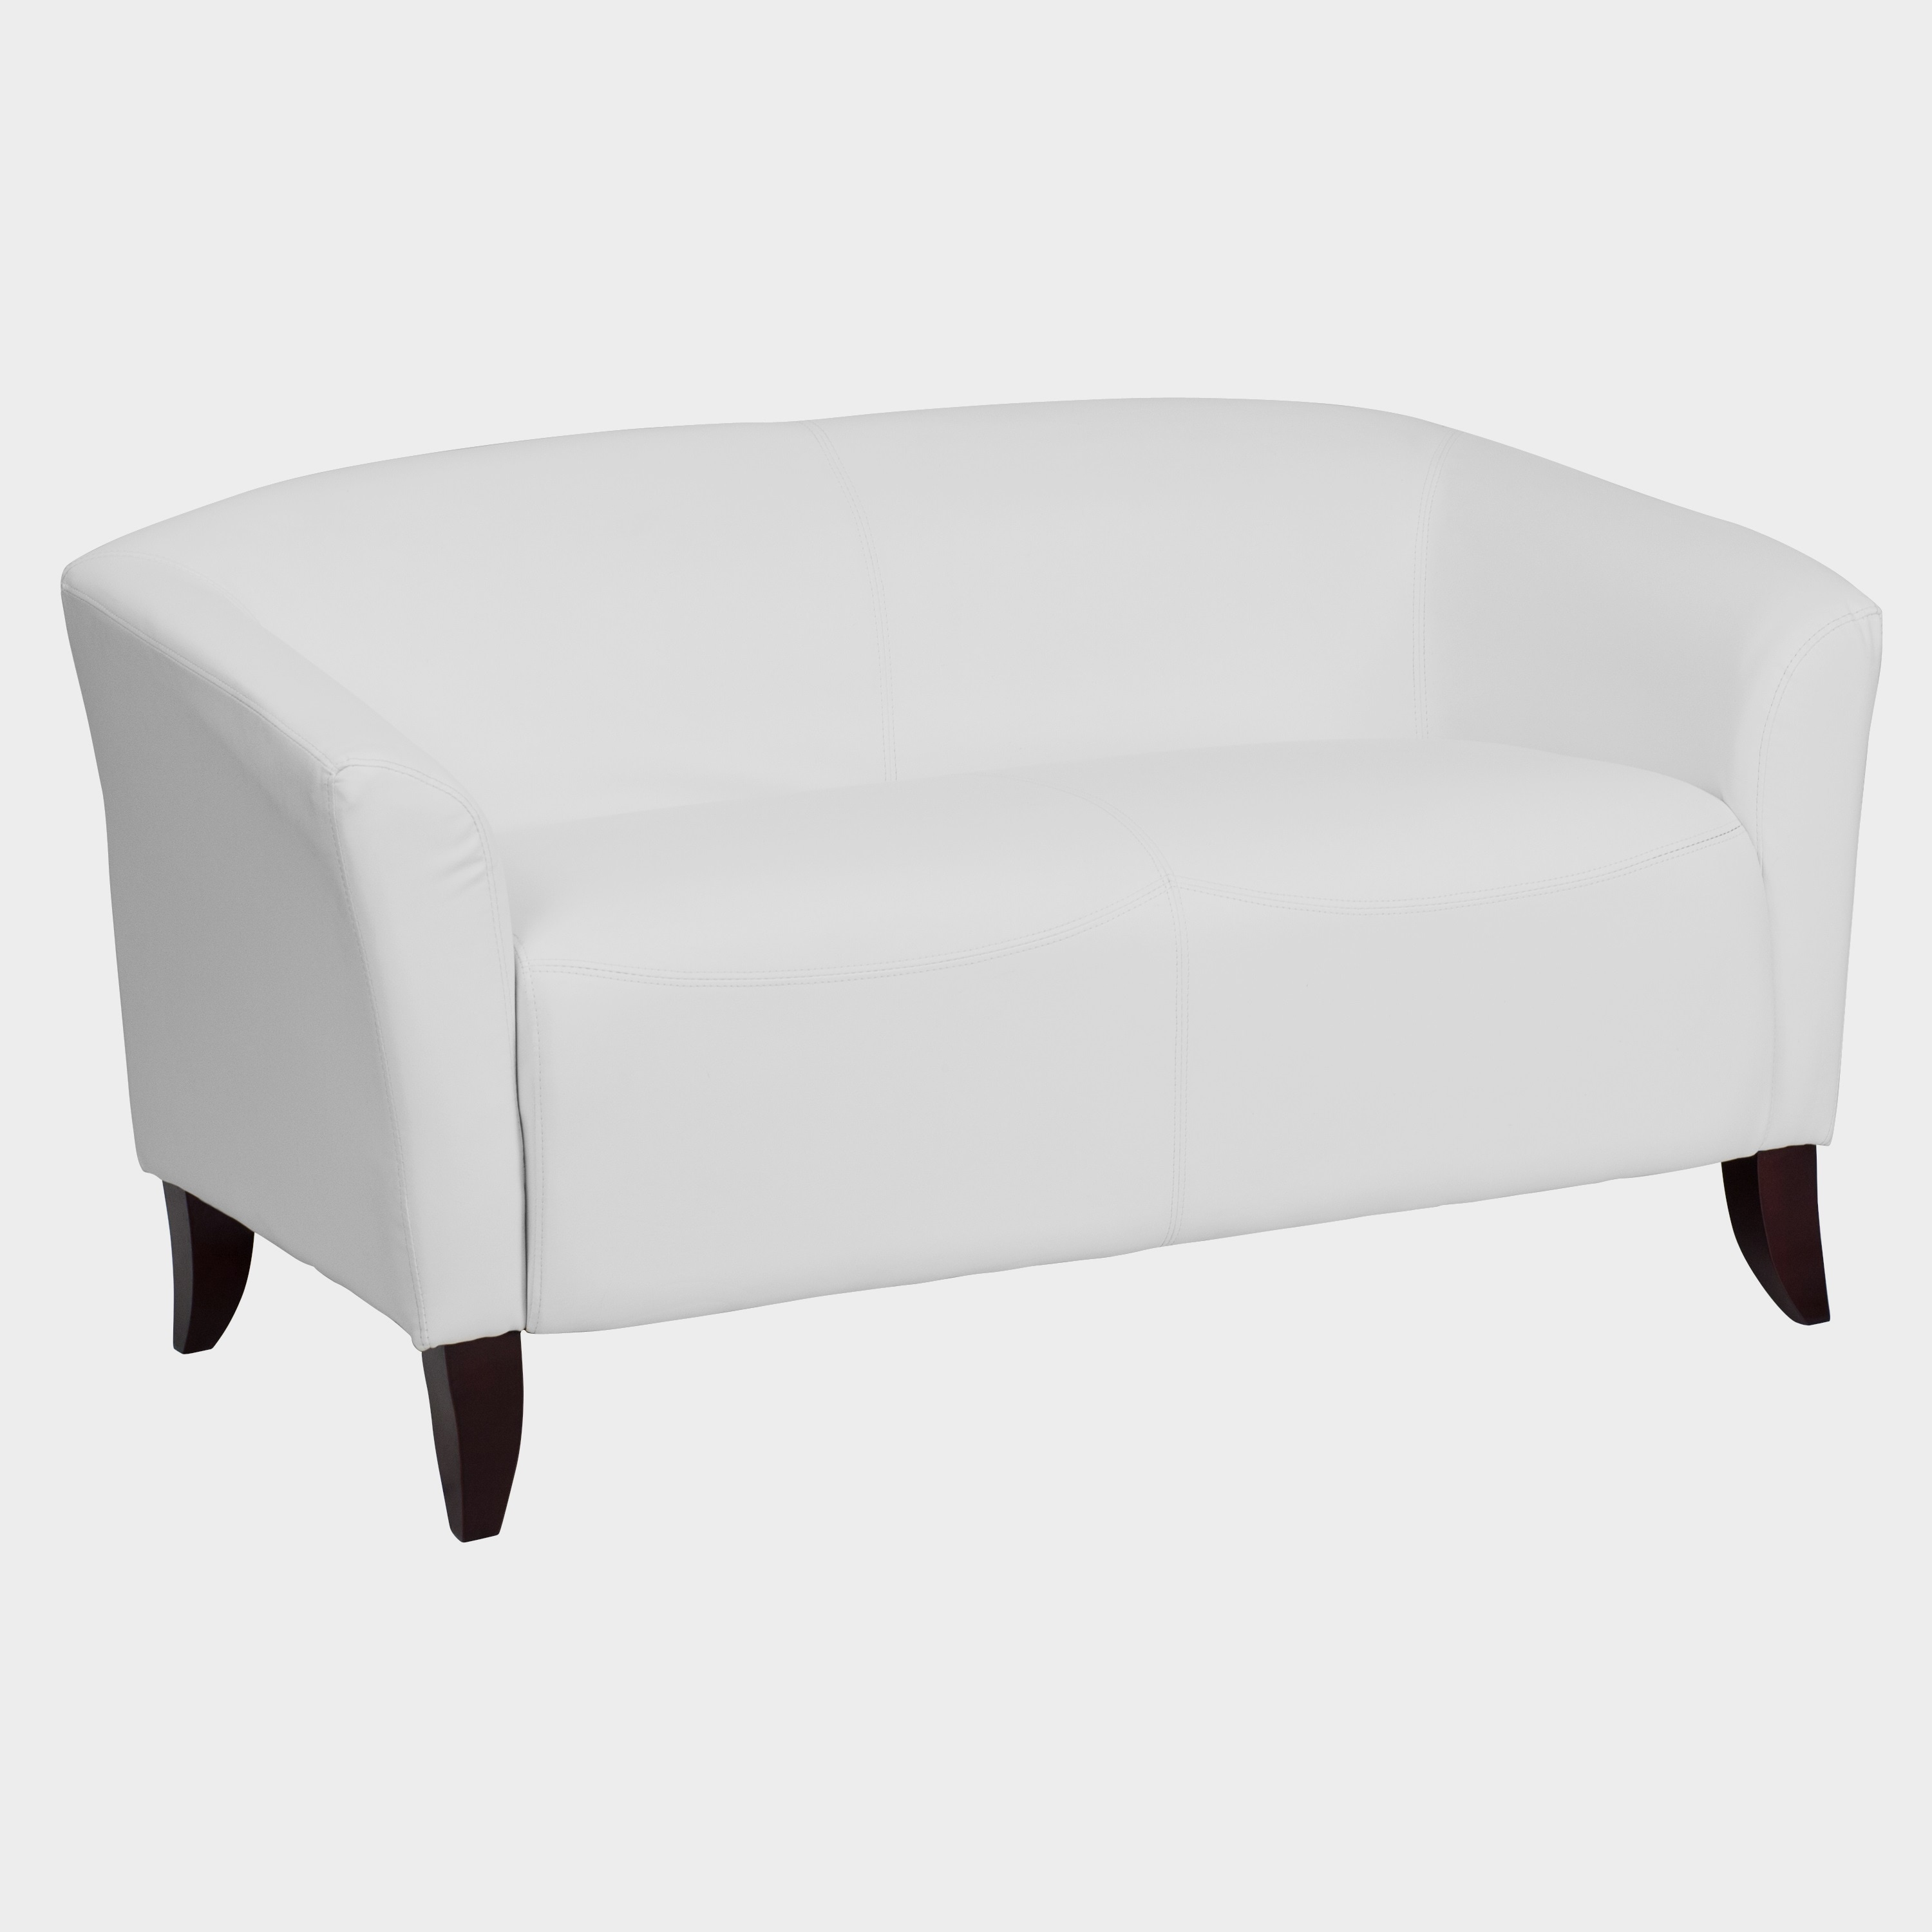 Fabulous Allison Contemporary White Leather Loveseat Andrewgaddart Wooden Chair Designs For Living Room Andrewgaddartcom